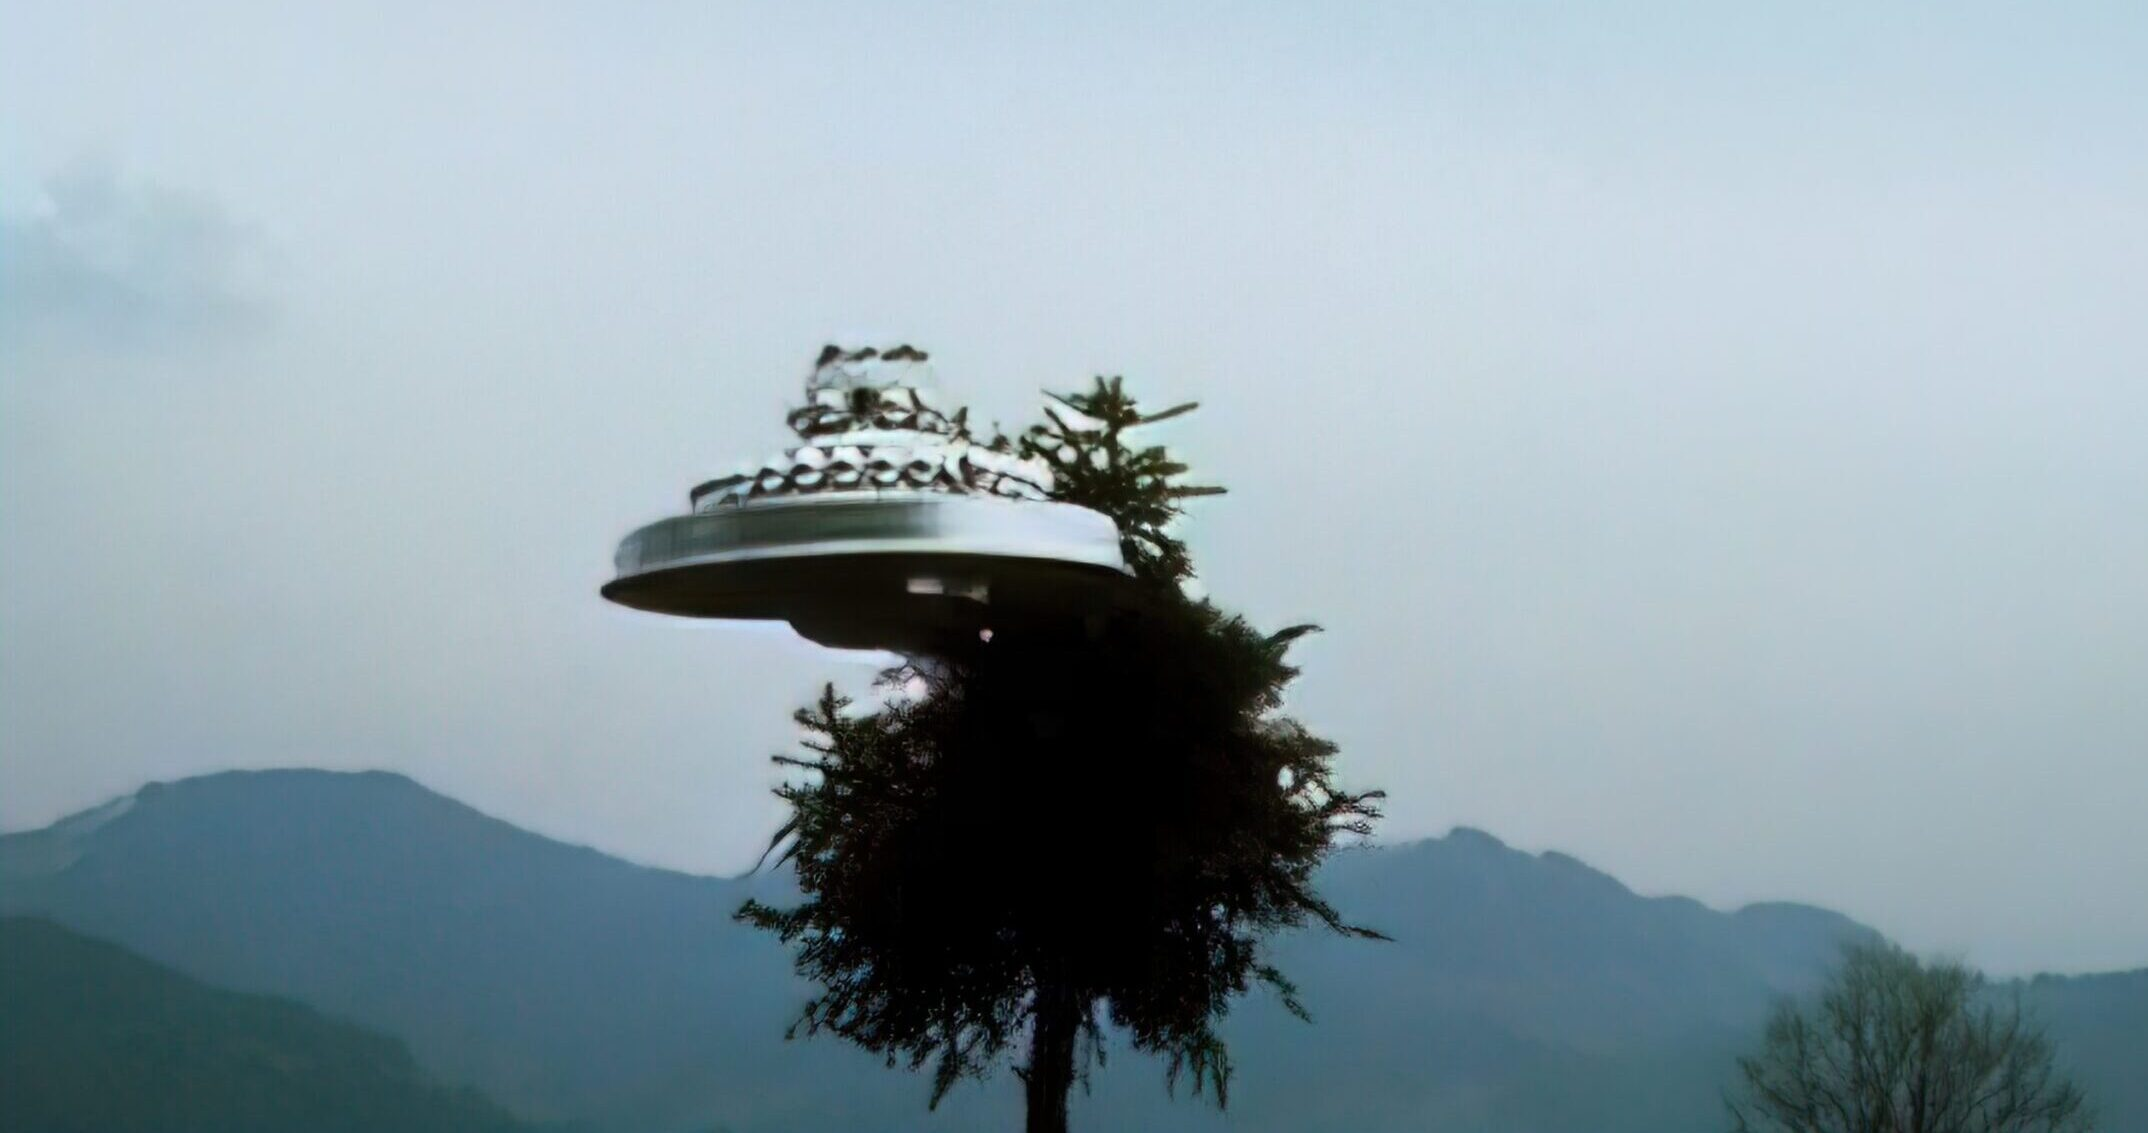 Wedding Cake UFO - Hovering by tree Near Hinwil, 4th April 1981